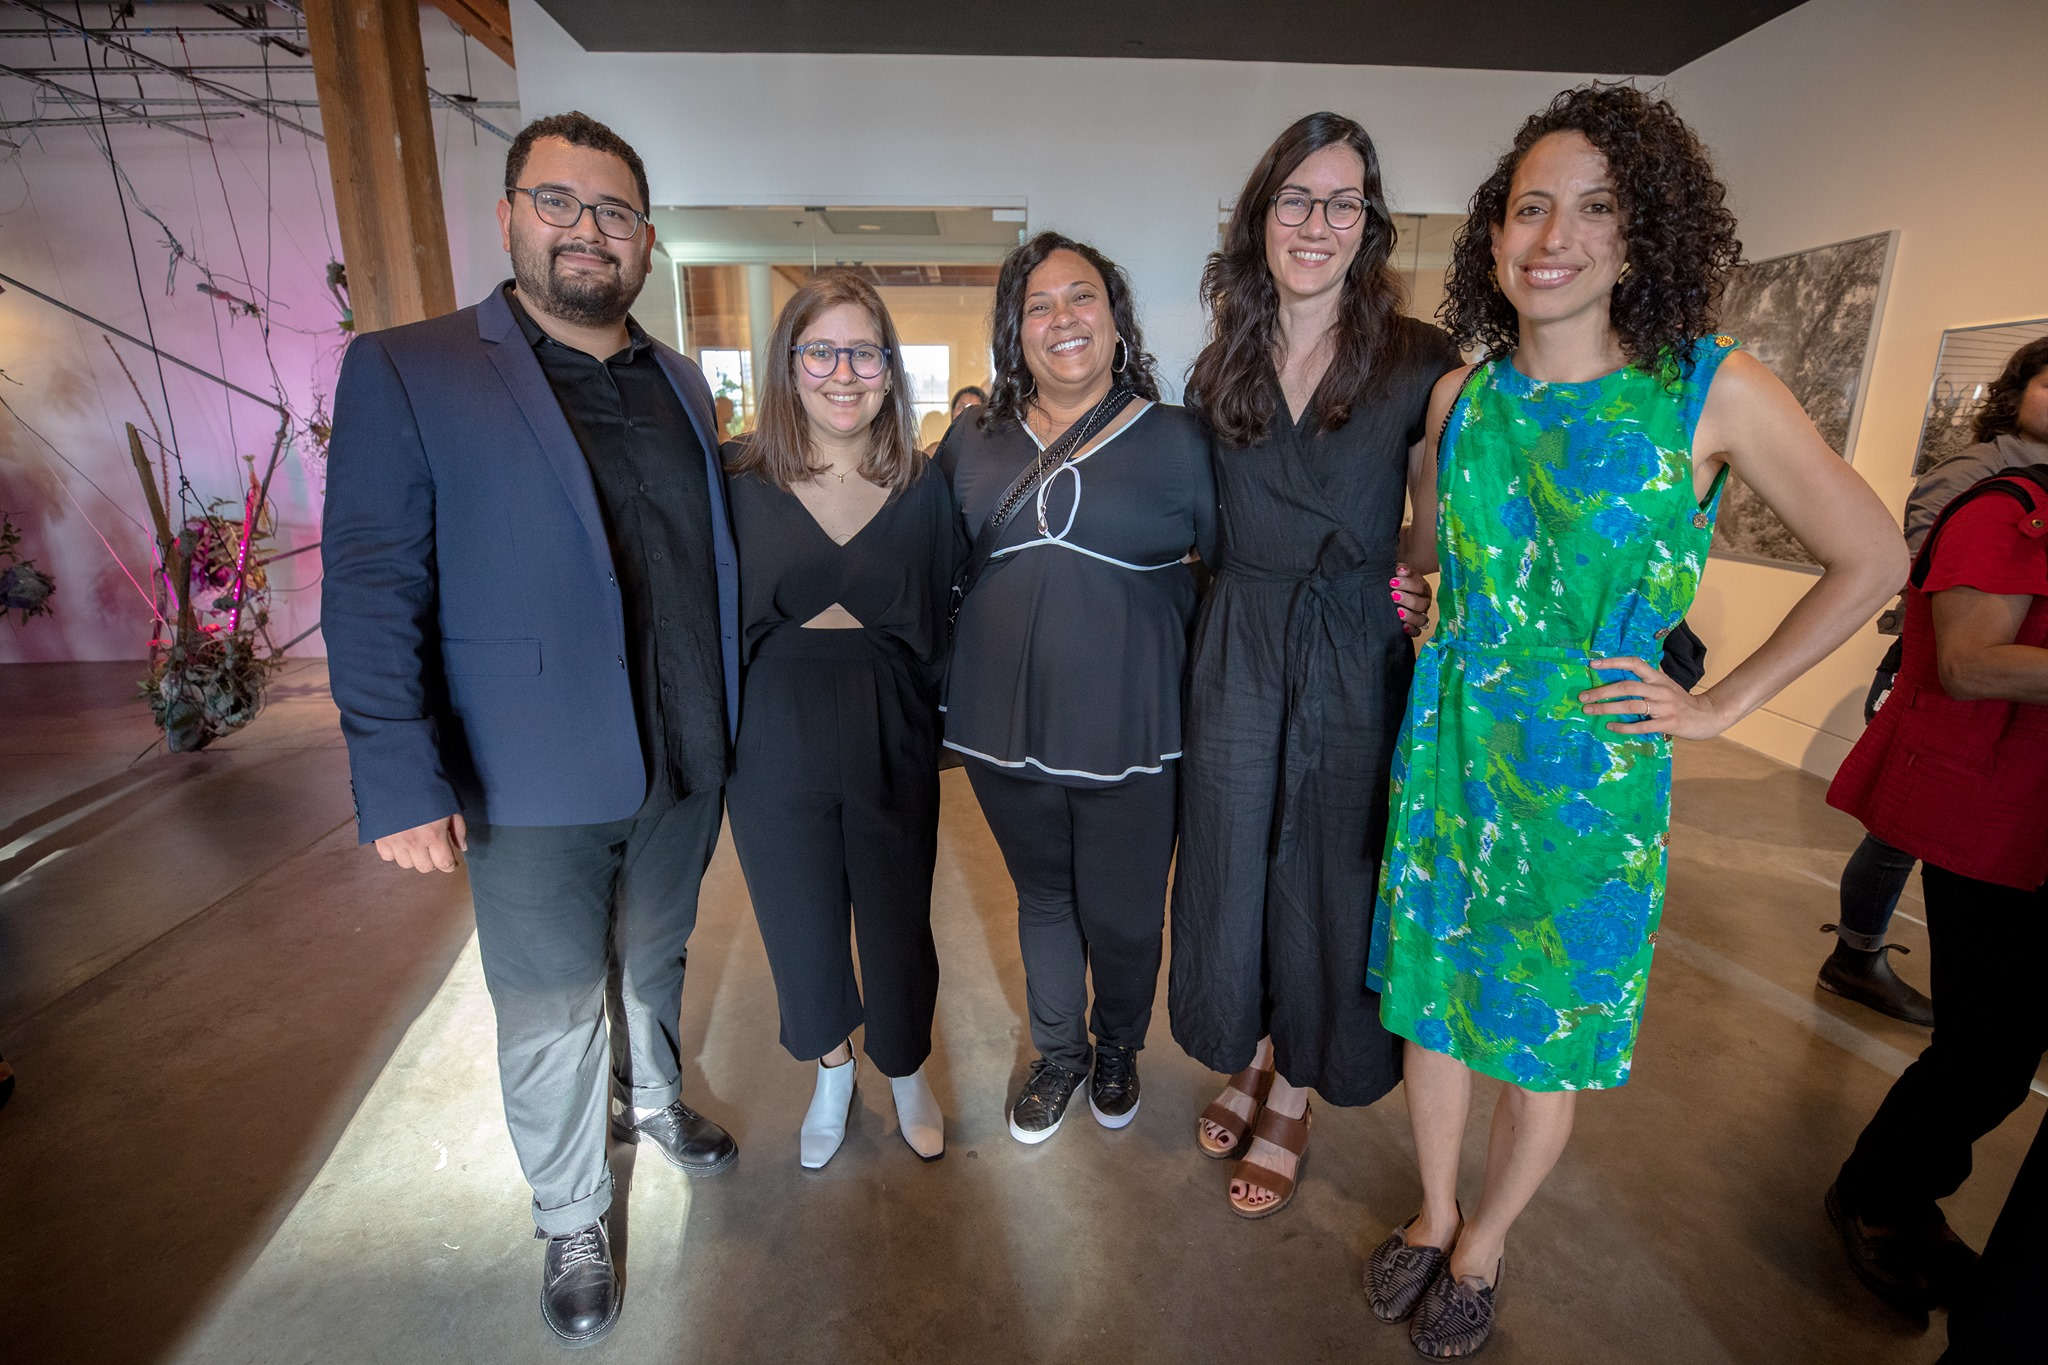 Left to right: space-ship co-founders Joel Campo and Julia Vlock with space-ship fellows Allison Beondé, Carla Simone, and Hannah Chalew